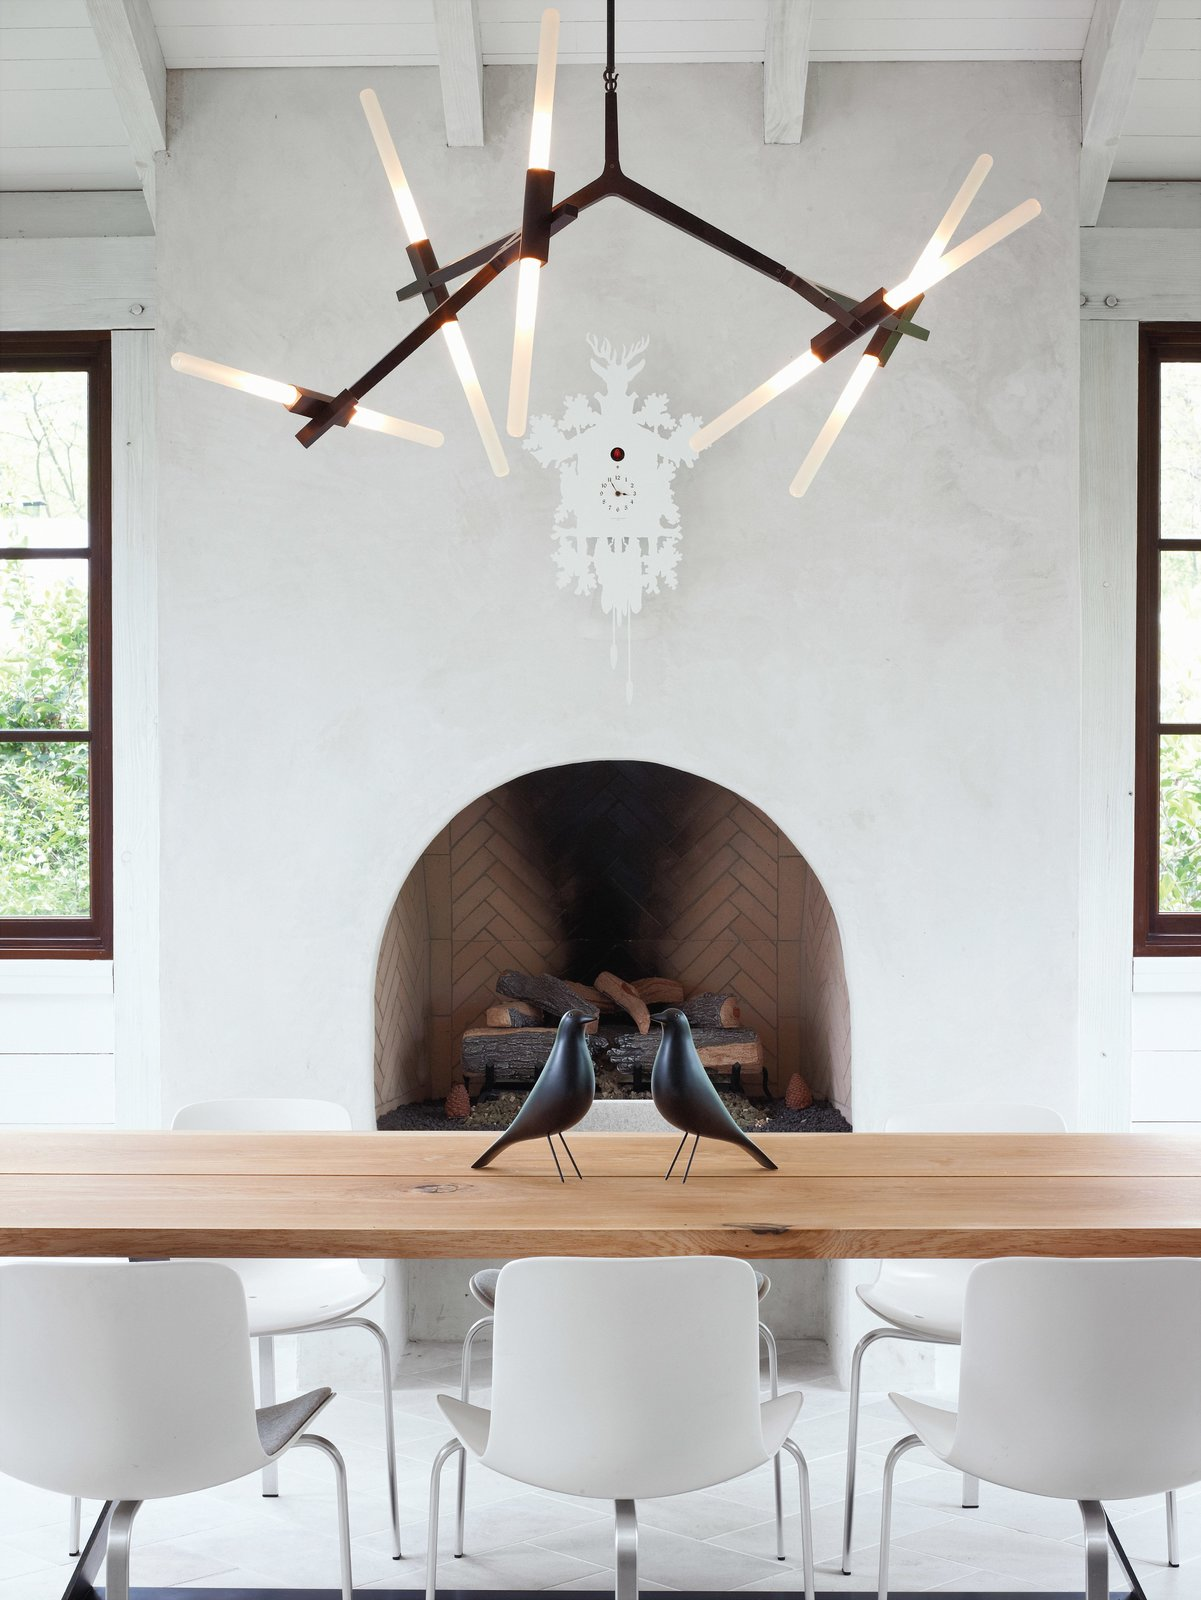 #interior #fireplace #modern #diningroom #chandelier #woodfireplace #rustic #bronze #lindseyadams #roll&hill #terrydwan #folkart #eames #eameshousebirdds #cuckooclock #Diamantini&Domeniconi #pk8 #republicoffritzhansen #PoulKjærlholm #kuhl-linscomb #houston #texas